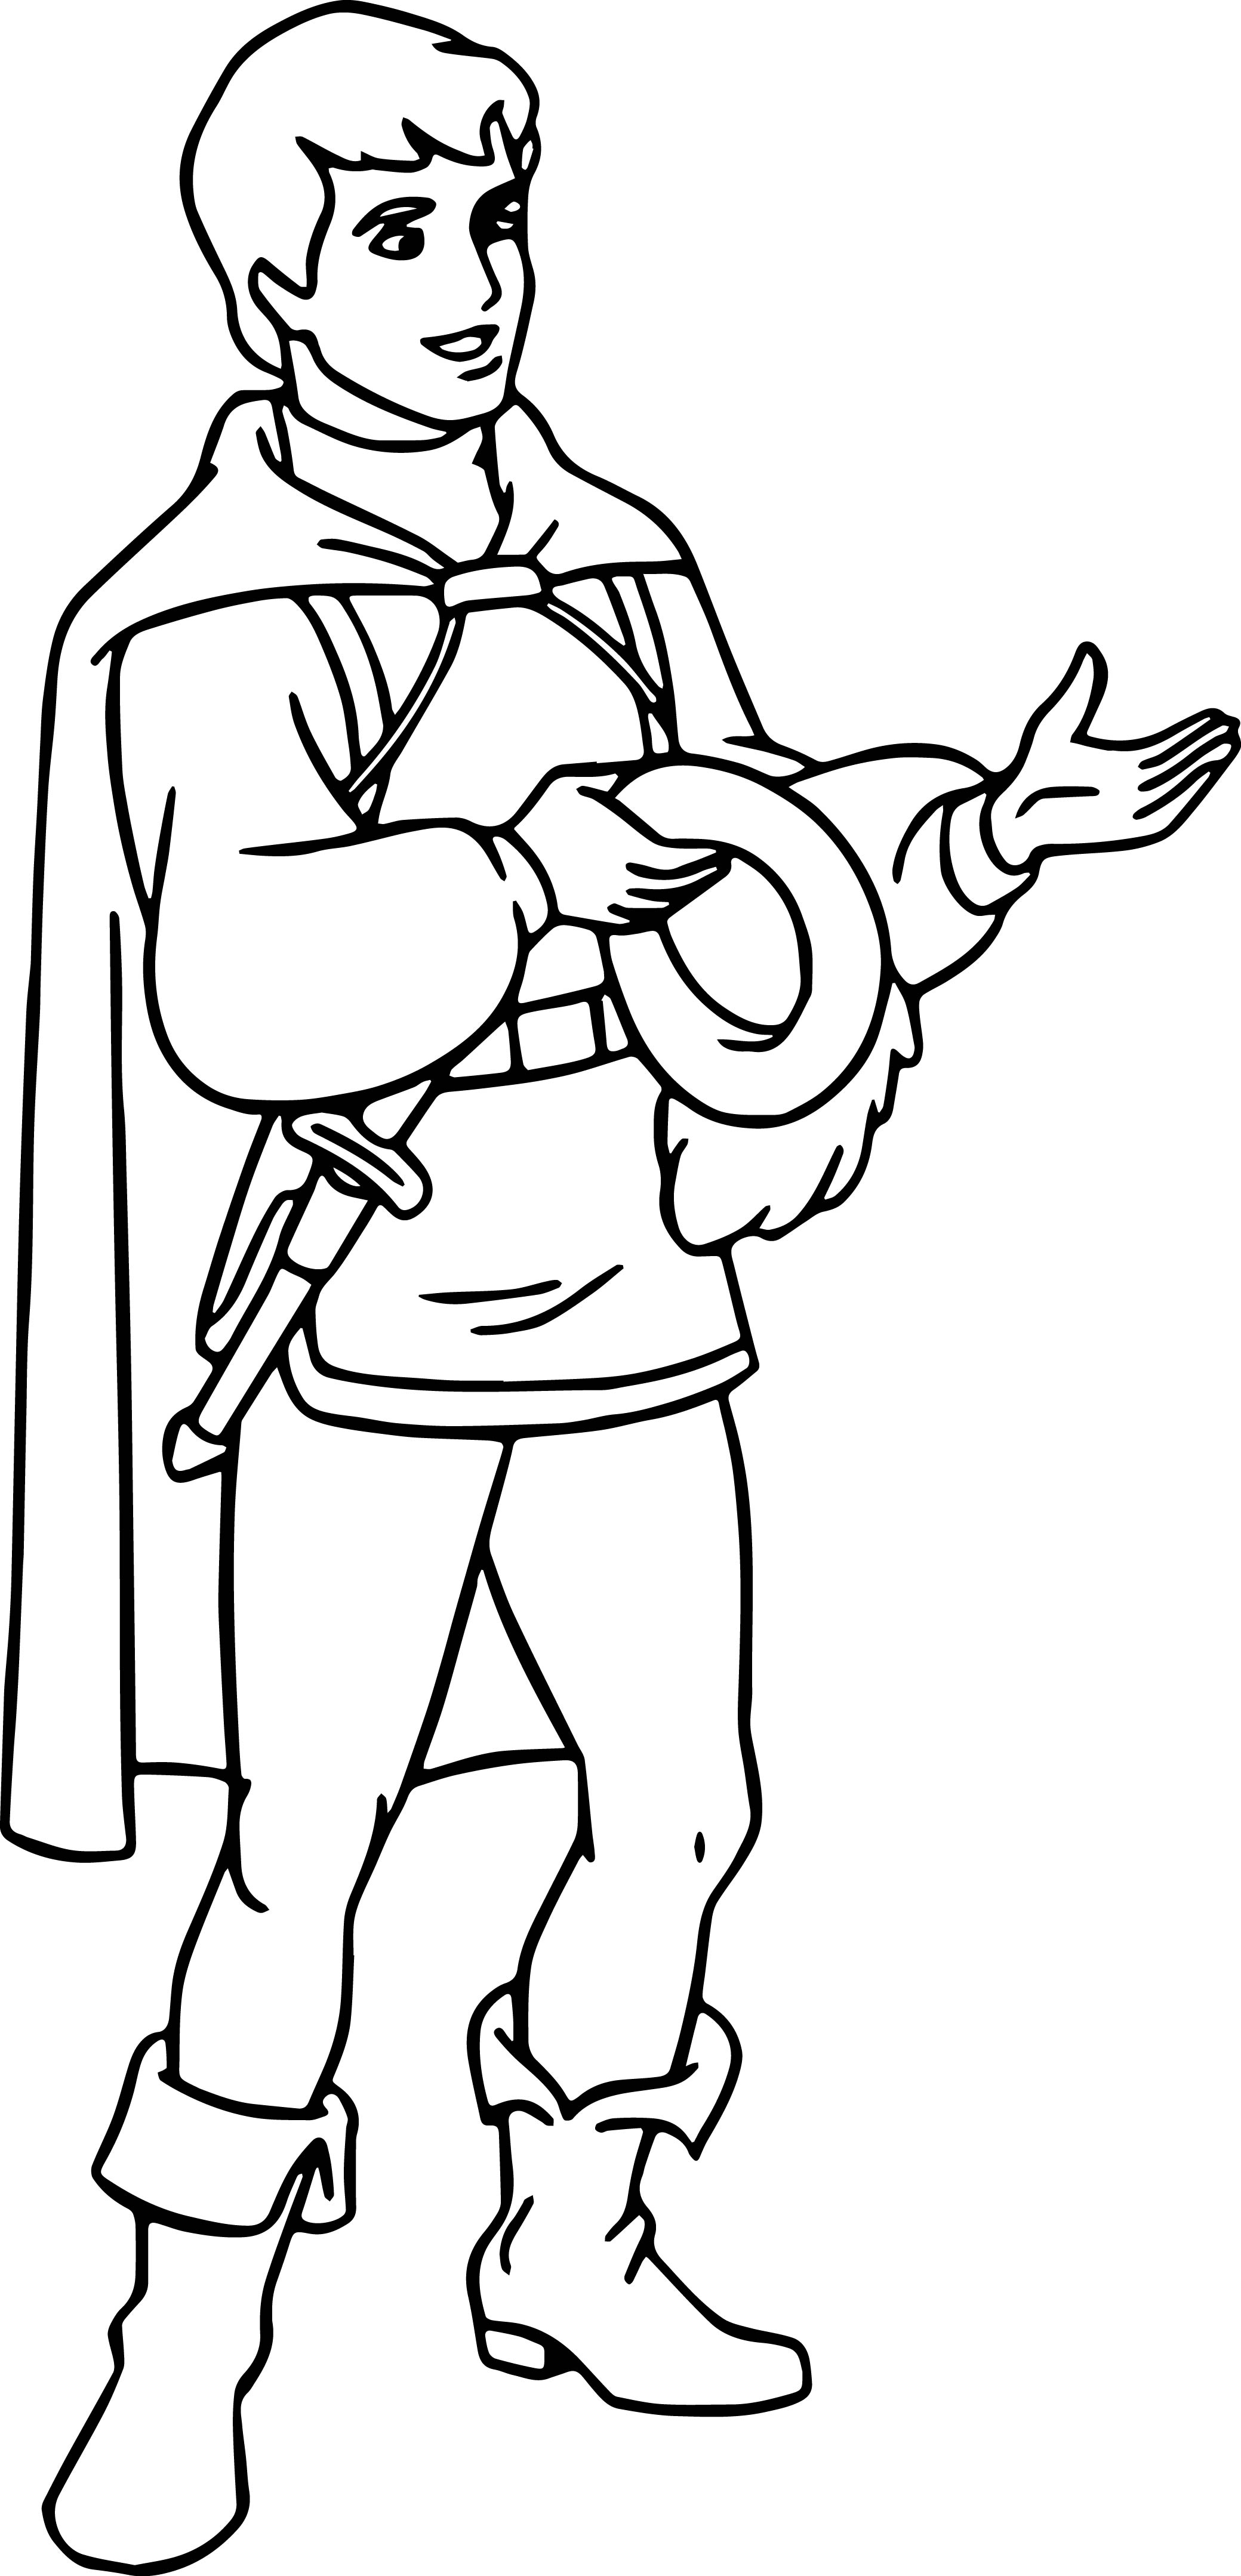 Snow white and the prince hat coloring page for Coloring pages of snow white